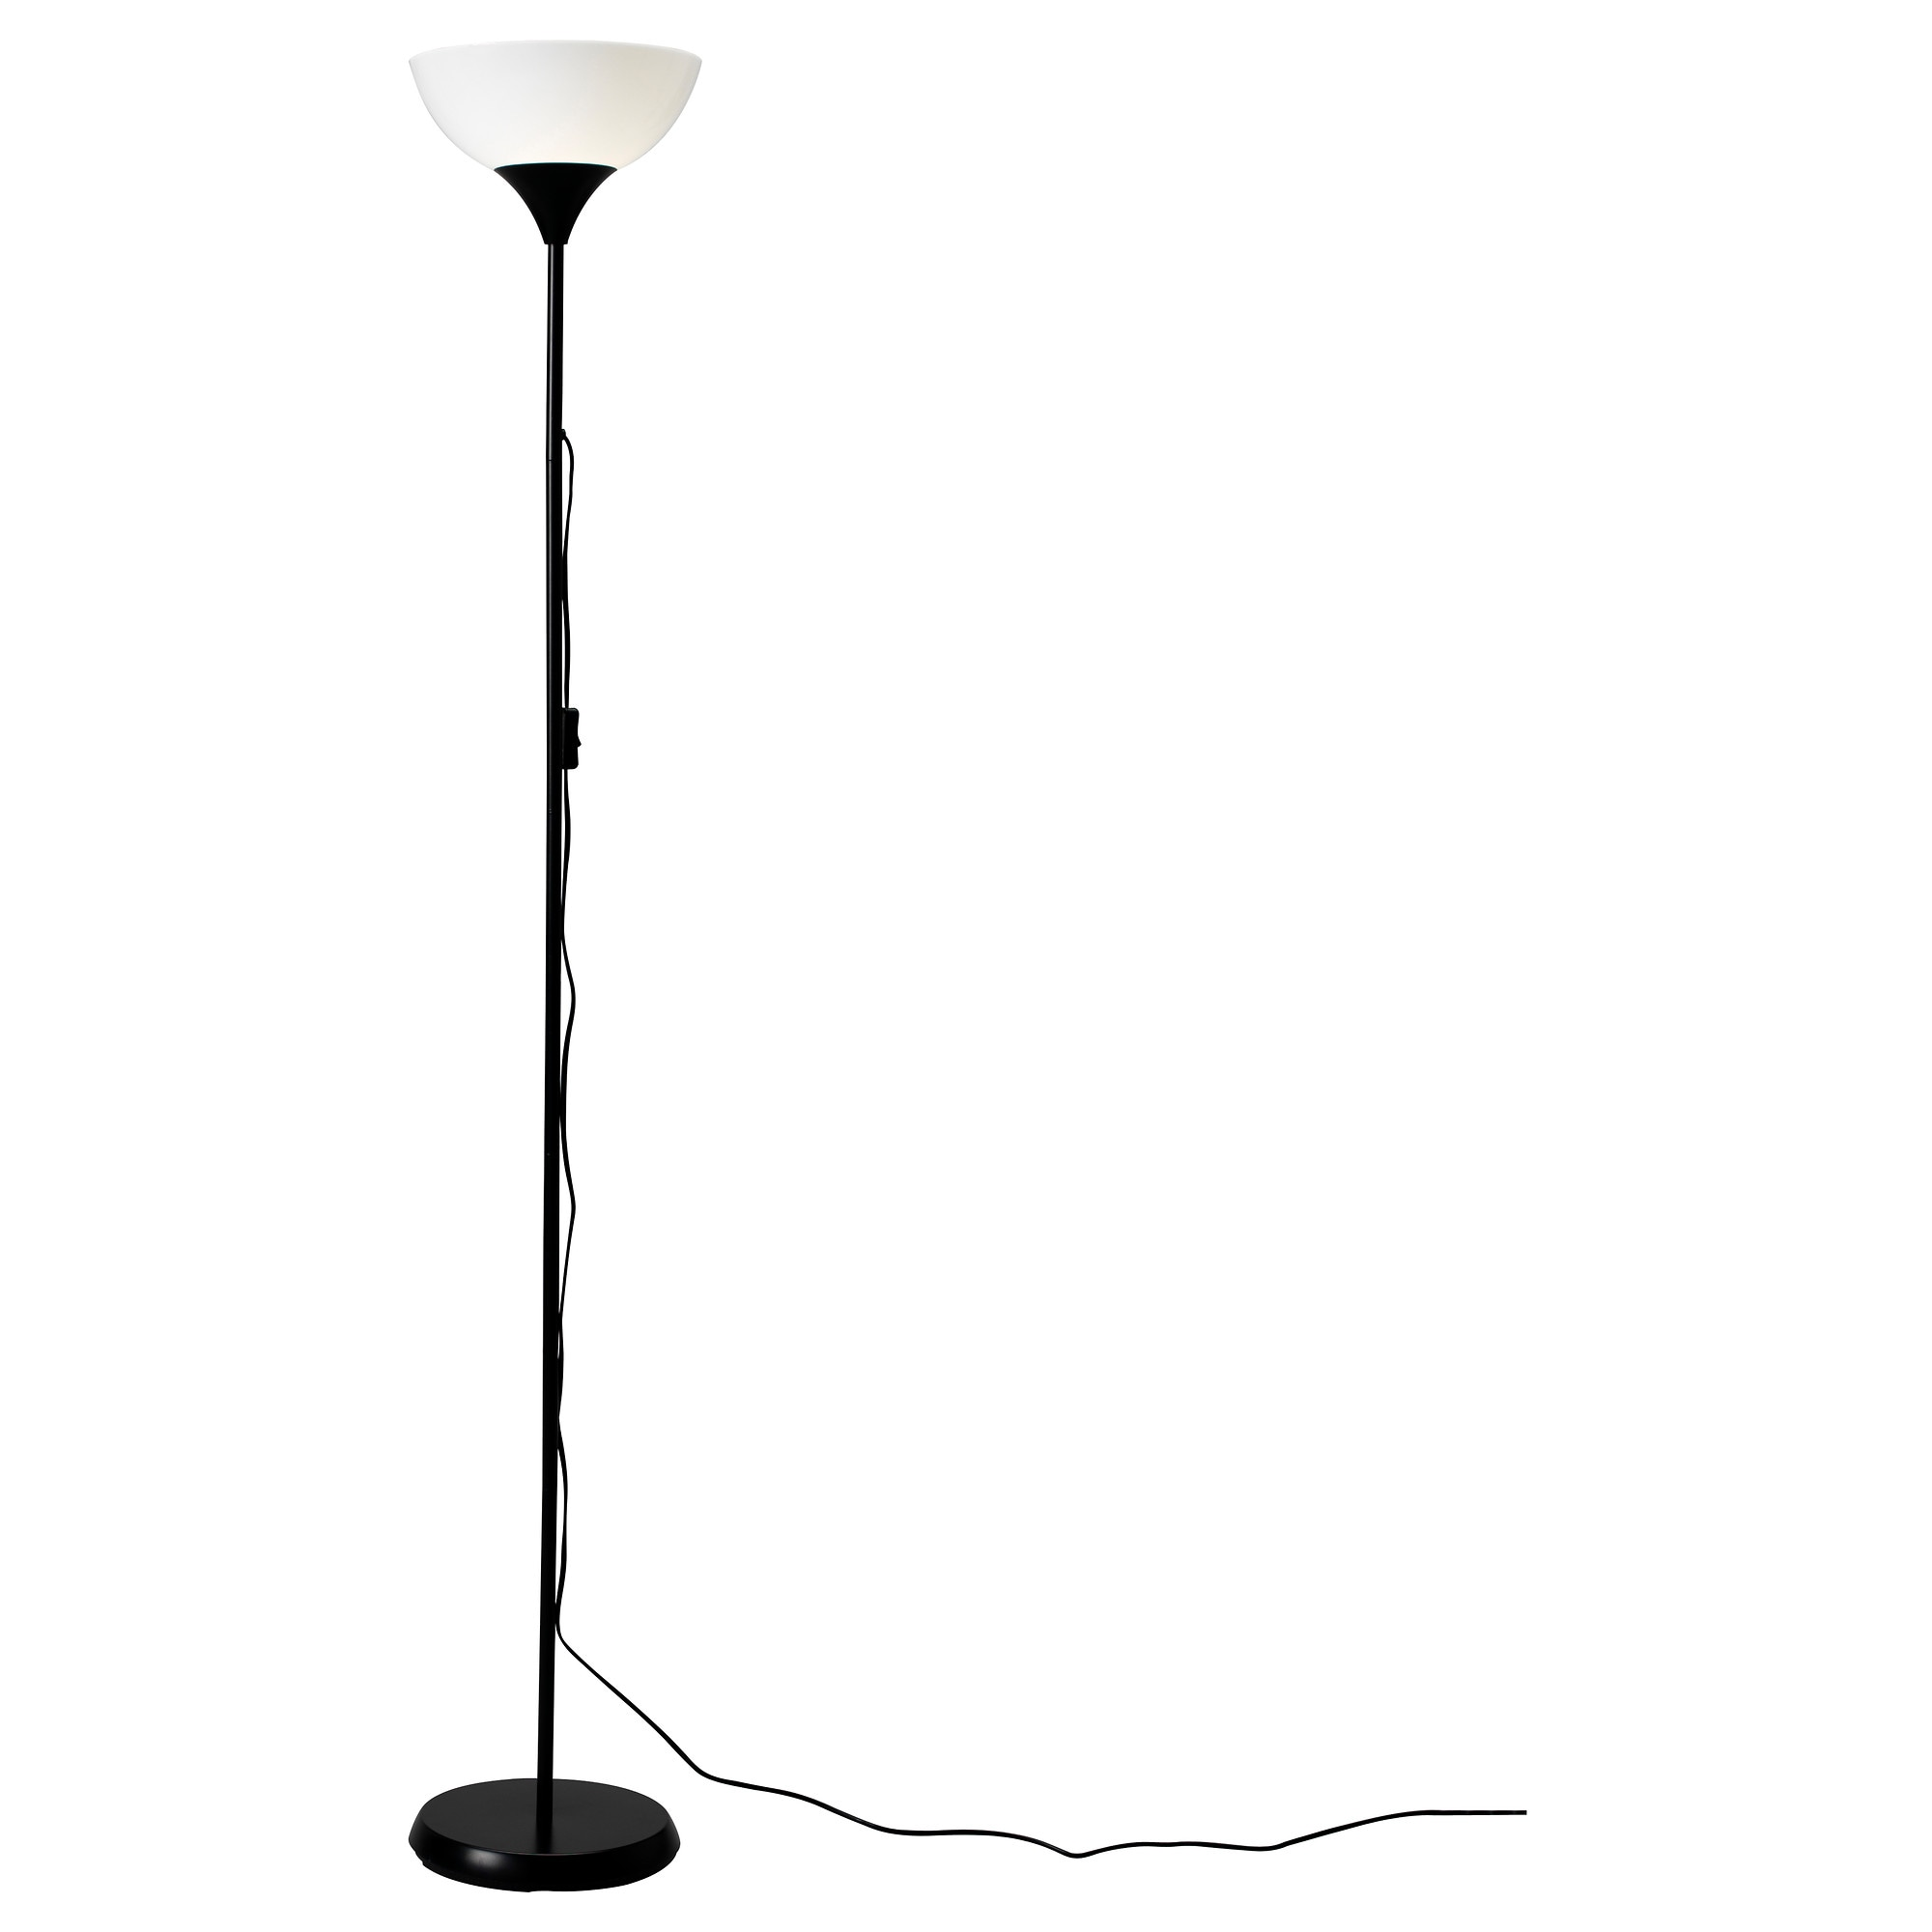 White floor lamp ikea - Inter Ikea Systems B V 1999 2017 Privacy Policy